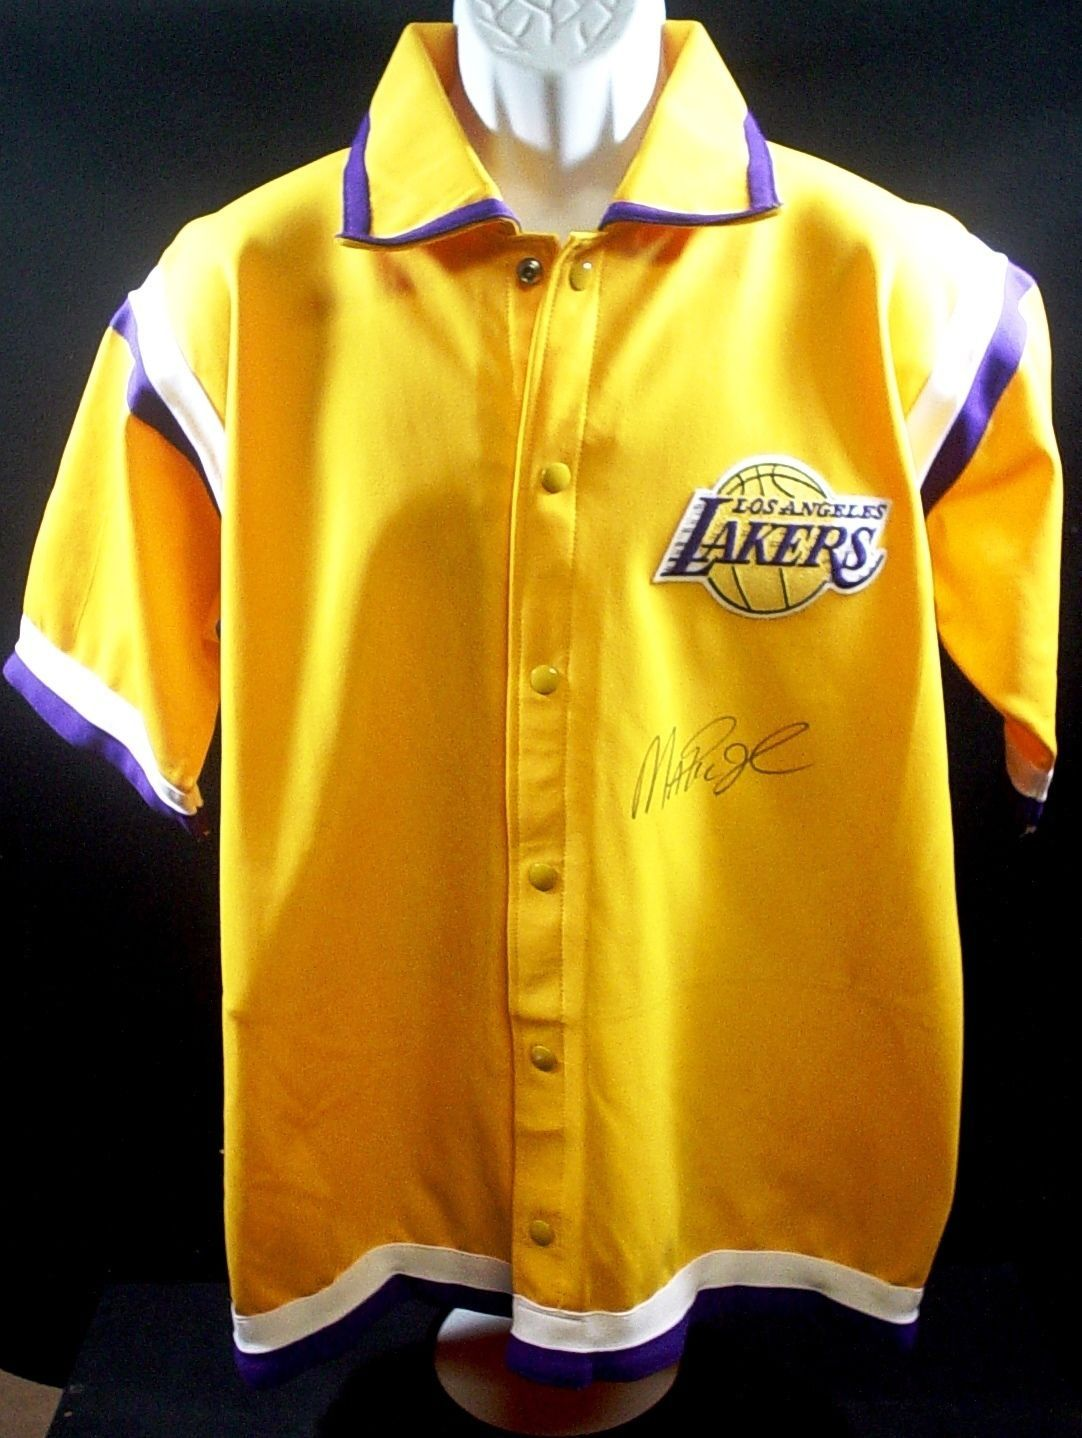 9f1b9d051e8 Magic Johnson Autograph Los Angeles Lakers Warm-Up Jersey NBA Hardwood  Classics